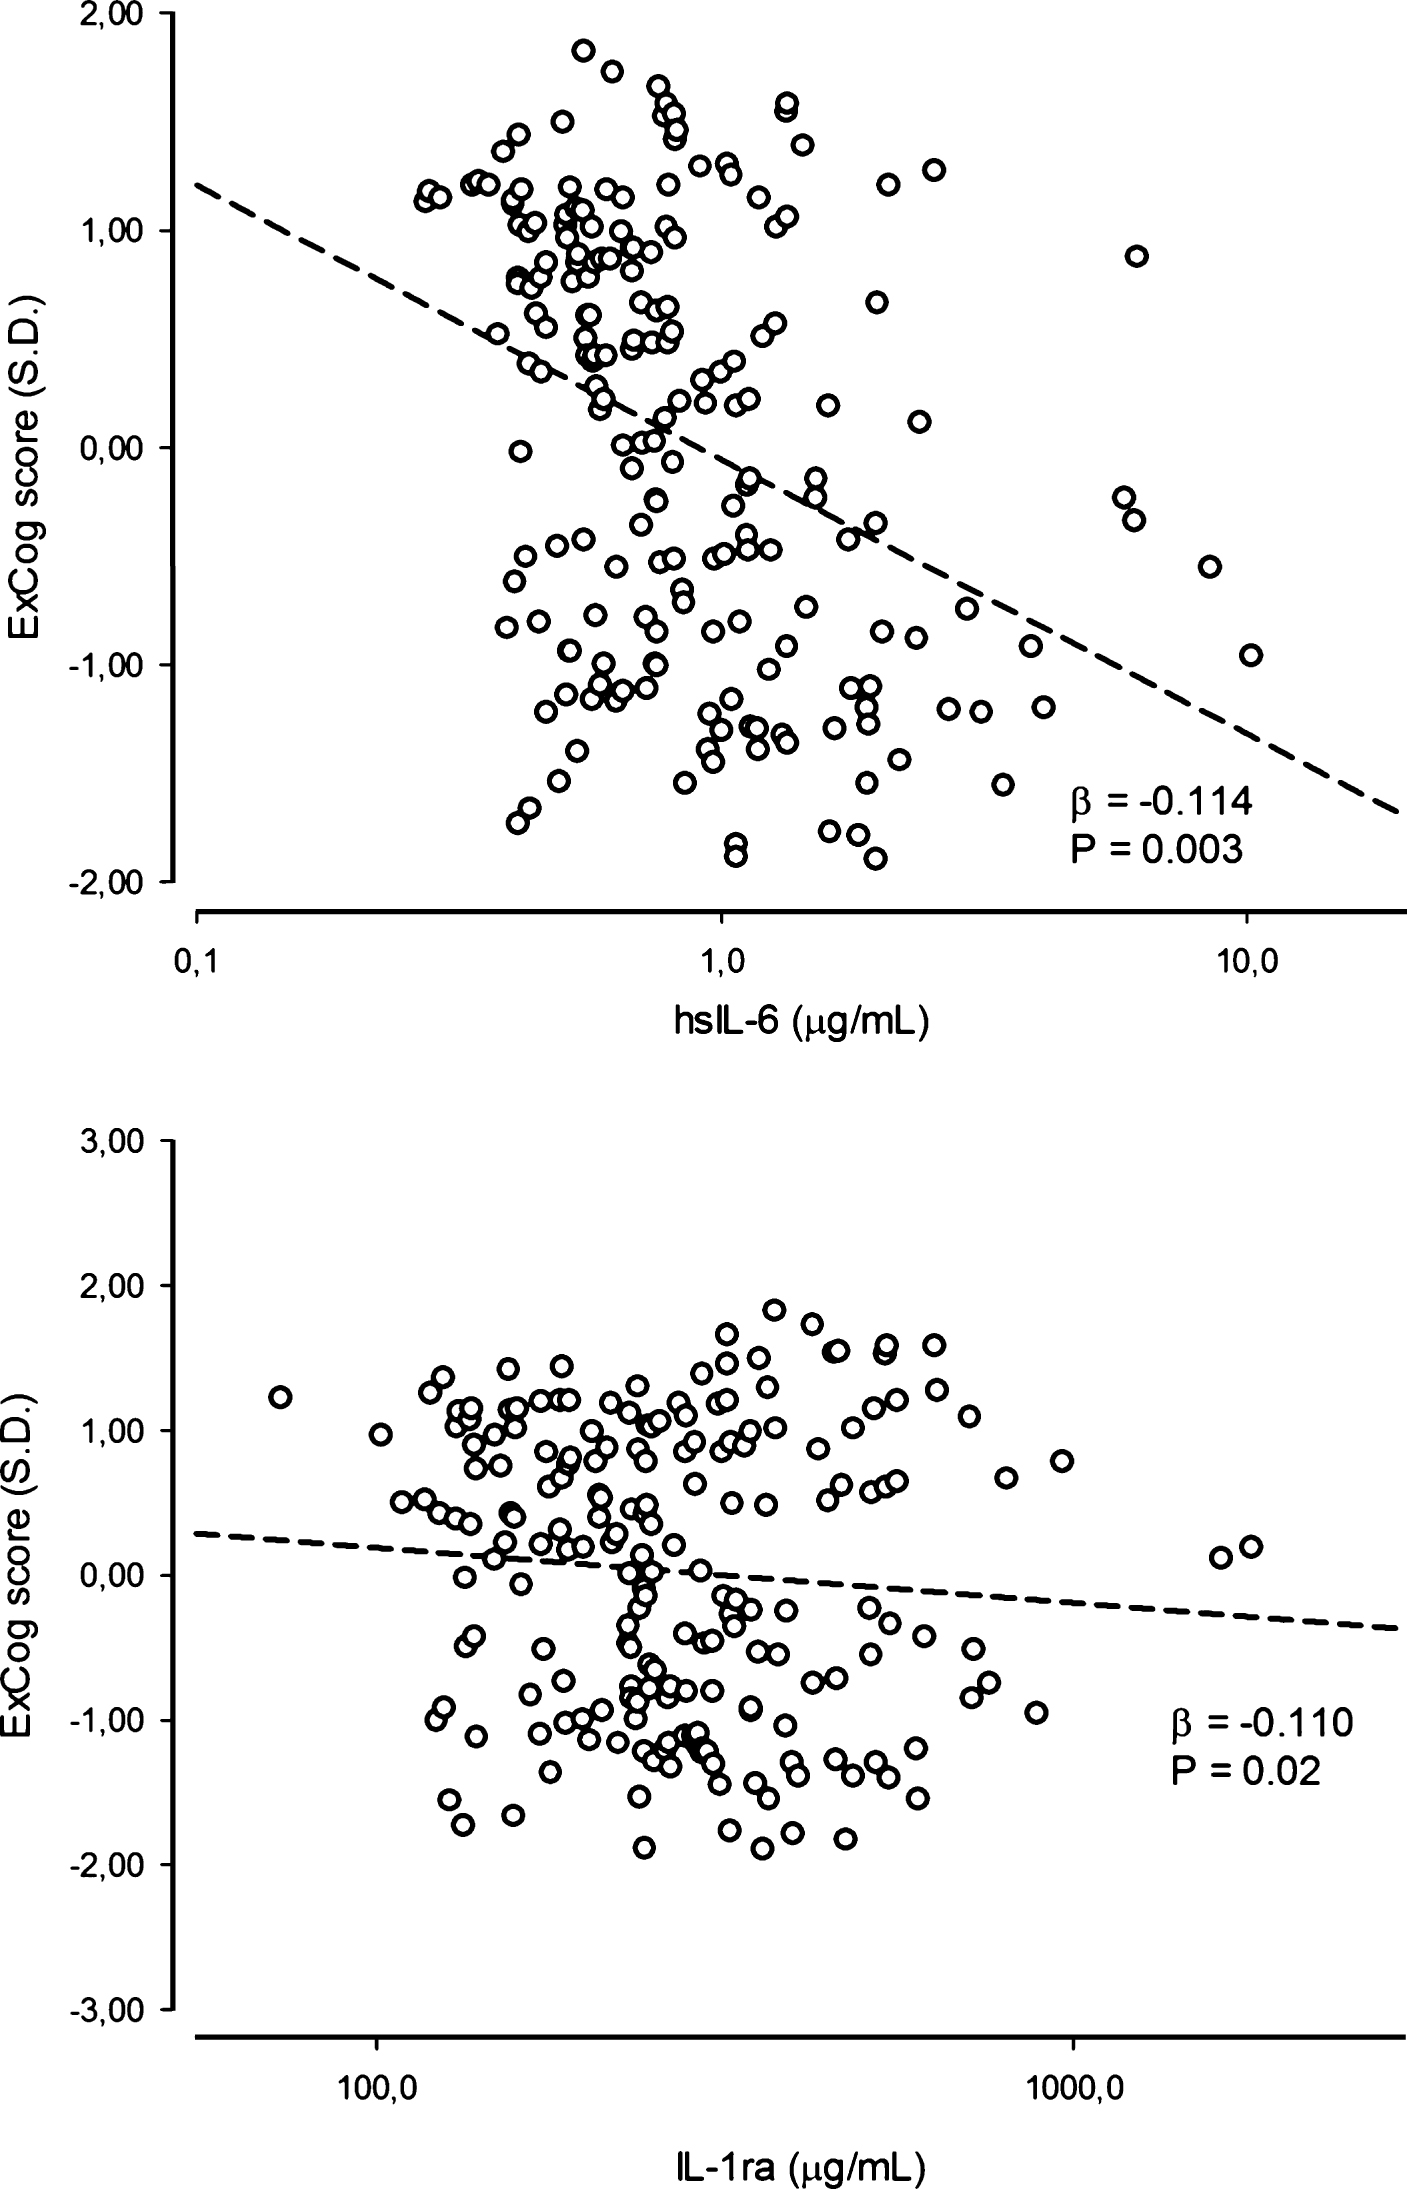 medium resolution of excog score in relation to levels of hsil 6 and il 1ra in hd